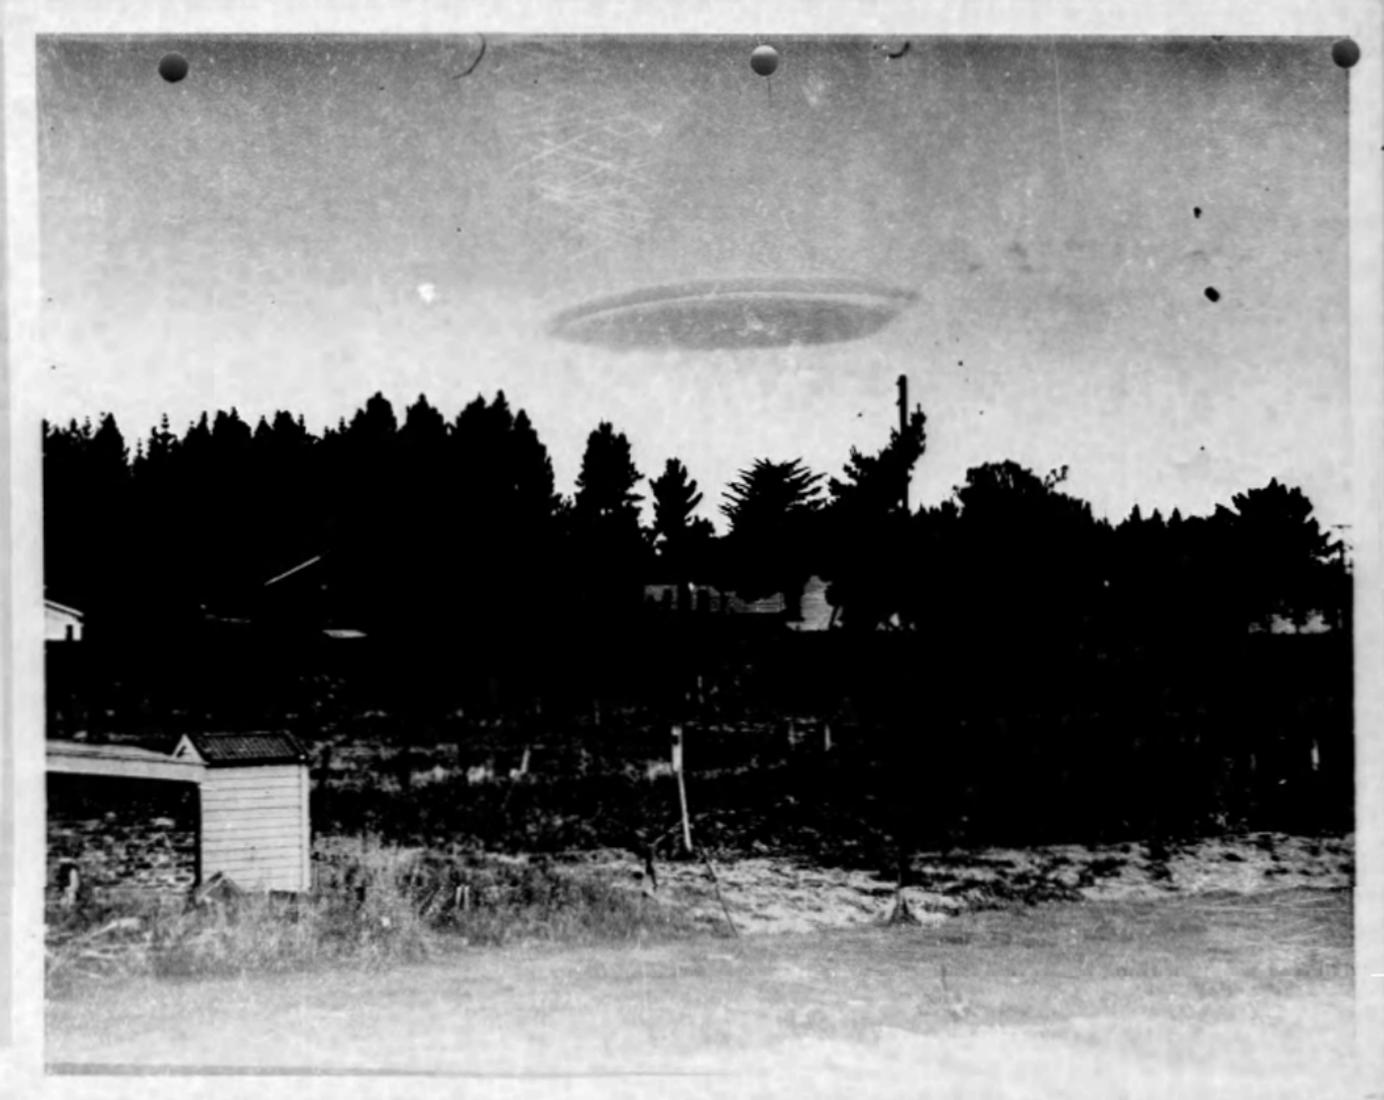 Propaganda of Project Blue Book | The Best Photos Of 'UFOs'  Ae65ad5b7ad642cbb79449184561228b_1d3a8a60b2f440359d967db7ad0f1a08_1_original